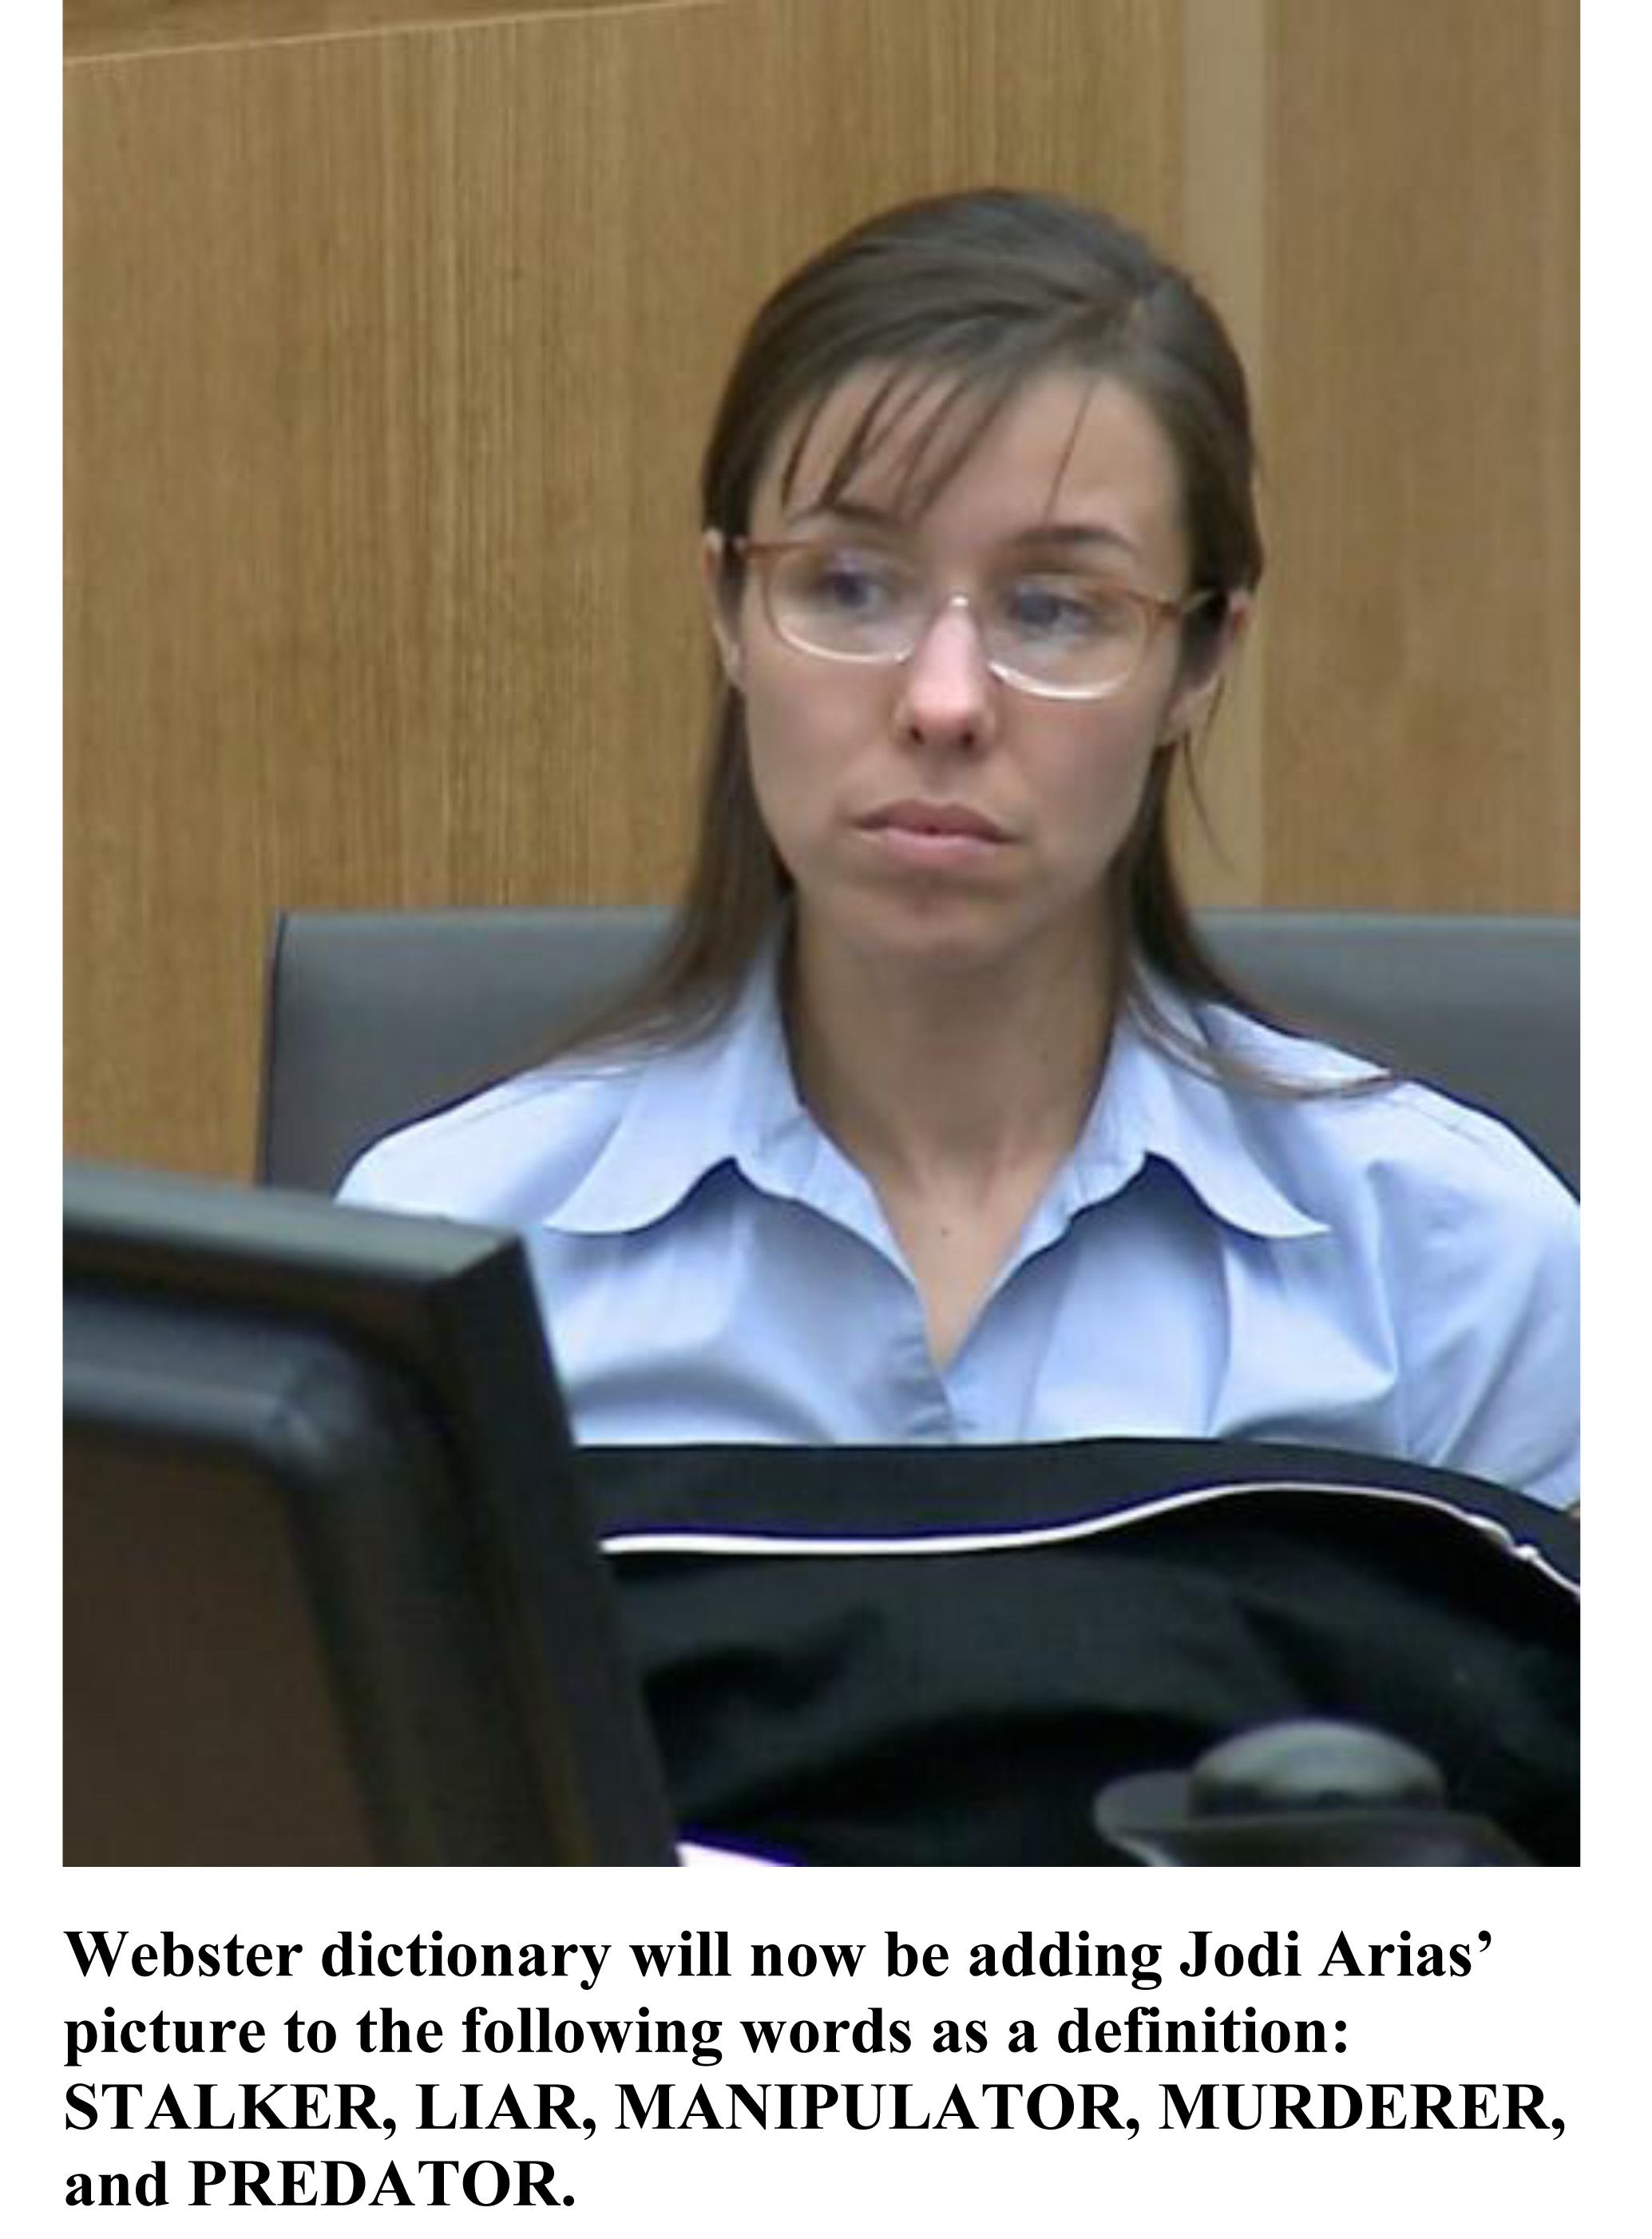 jodi arias should she have received the Jodi's case has had the country- and juries- divided for some time in 2008, after a rocky relationship, jodi killed her ex-boyfriend, travis, in a fit of rage.